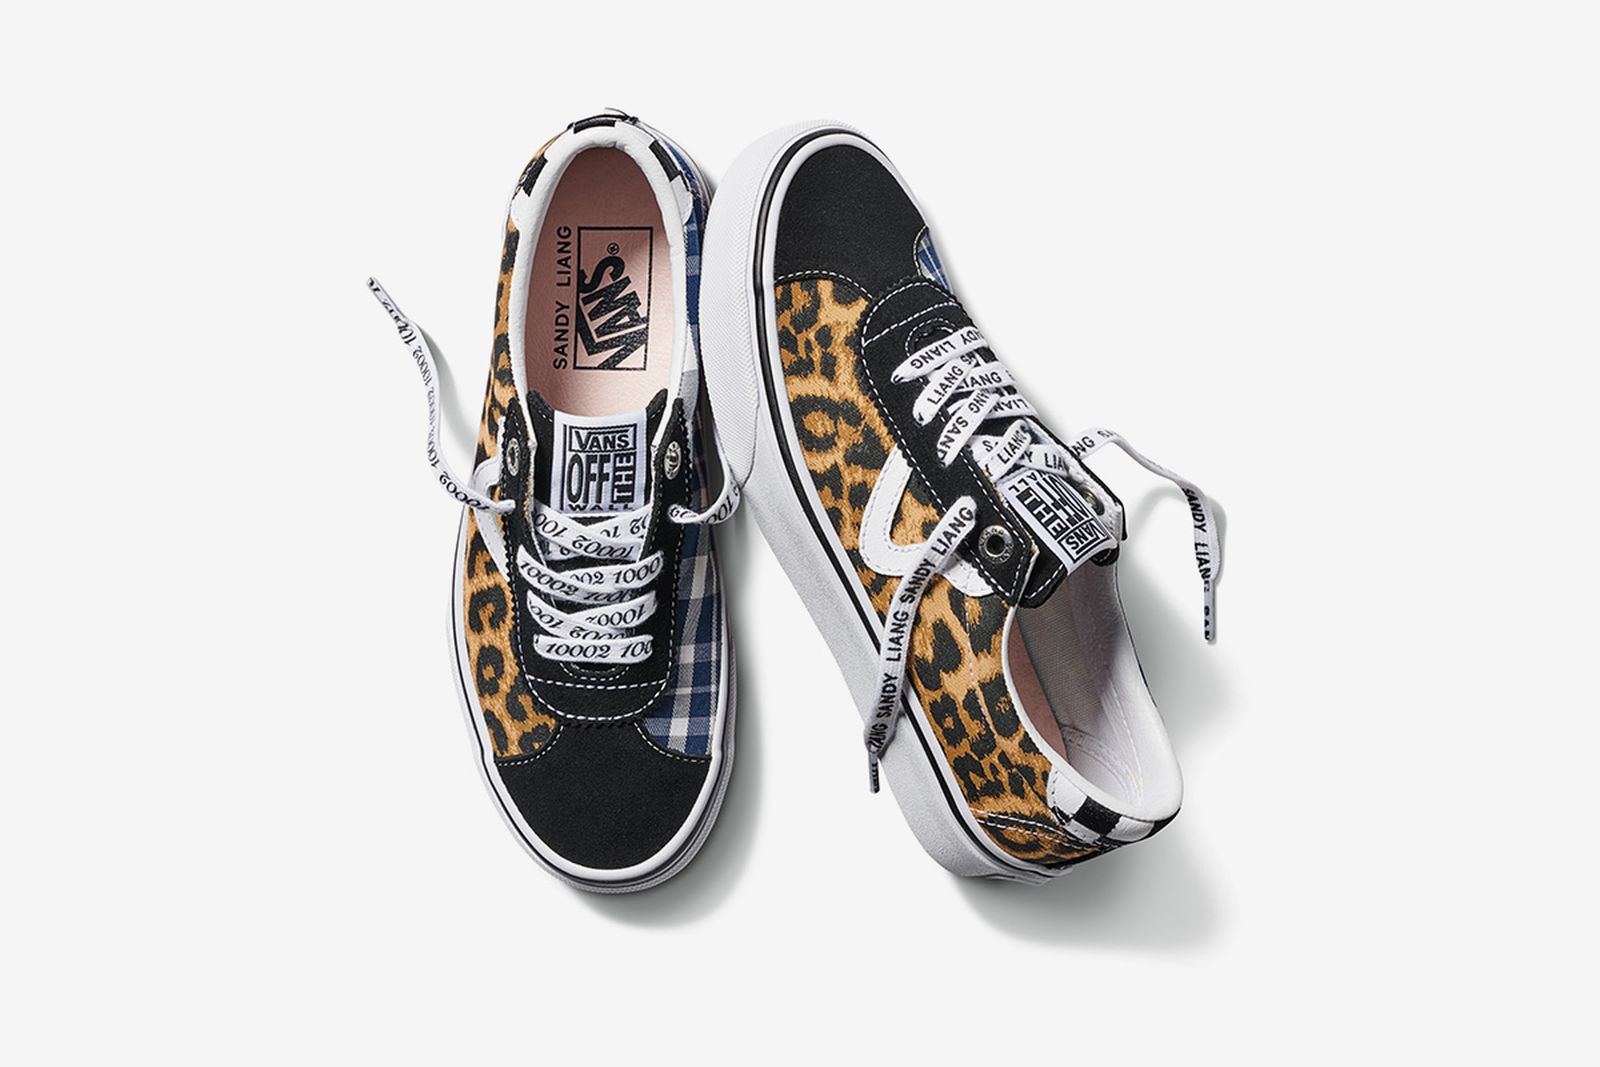 sandy-liang-vans-collection-release-date-price-1-03